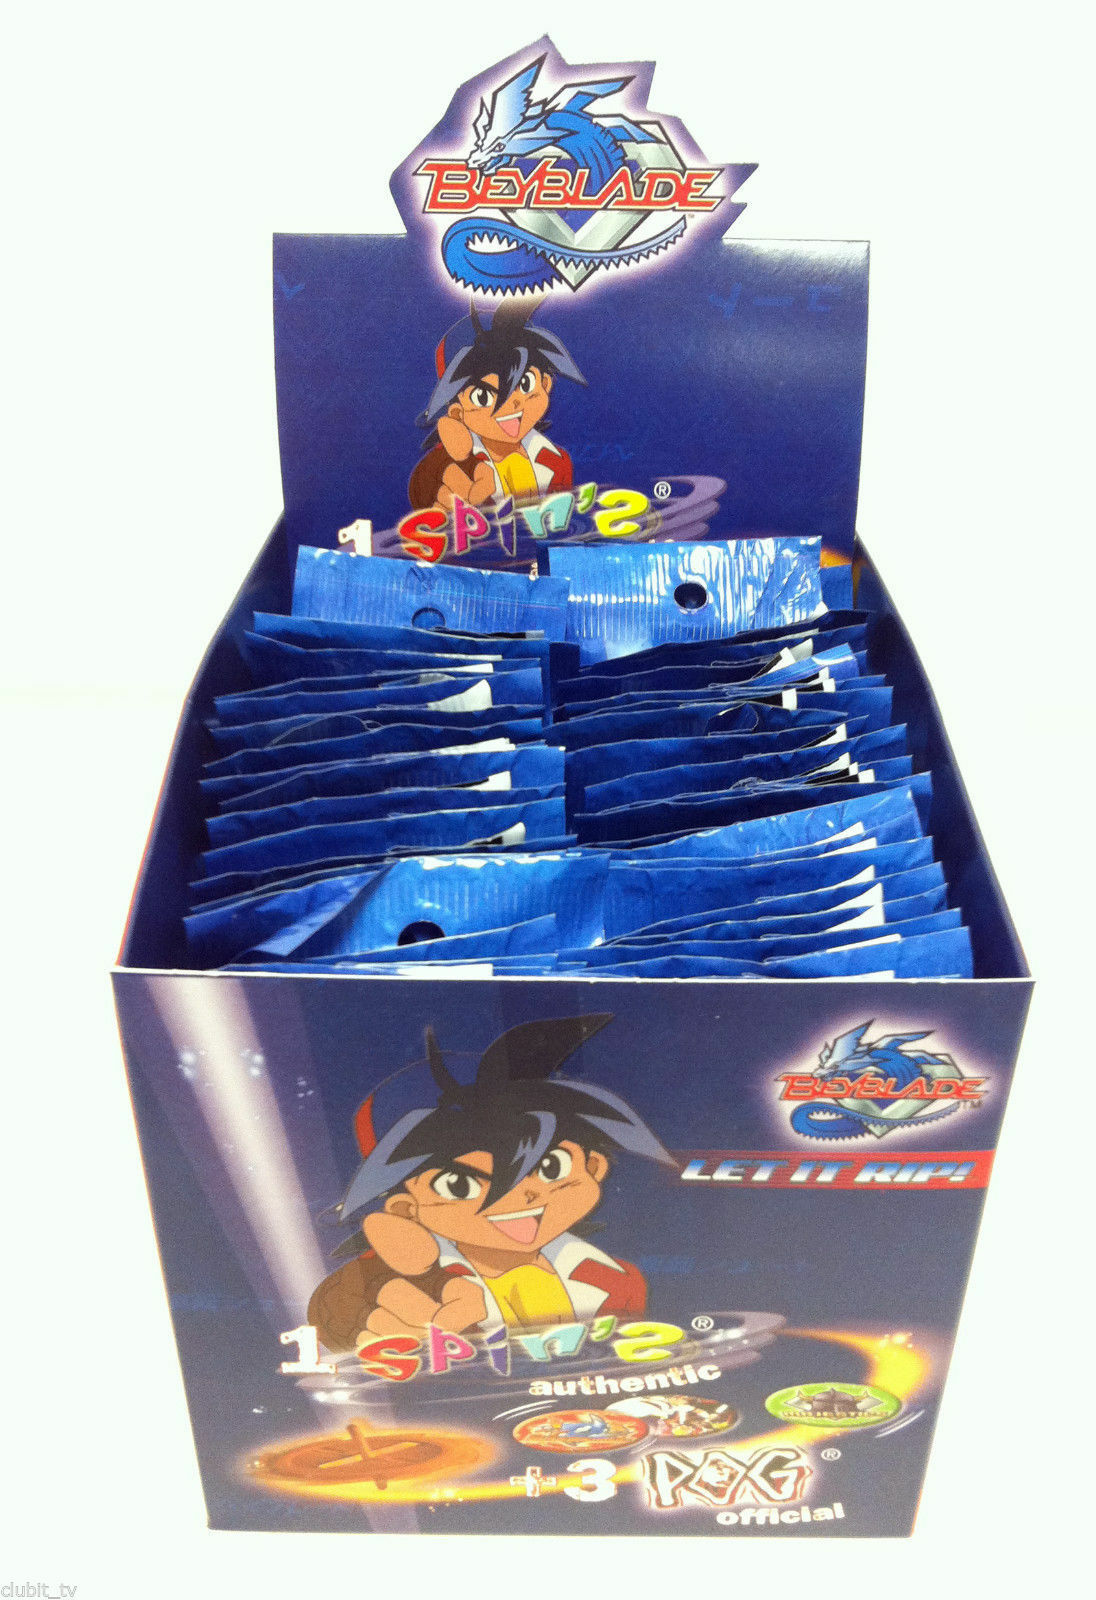 Beyblade Pogs Spinning Top Booster Packs Rare Collectable Fun Retro Spinners NEW